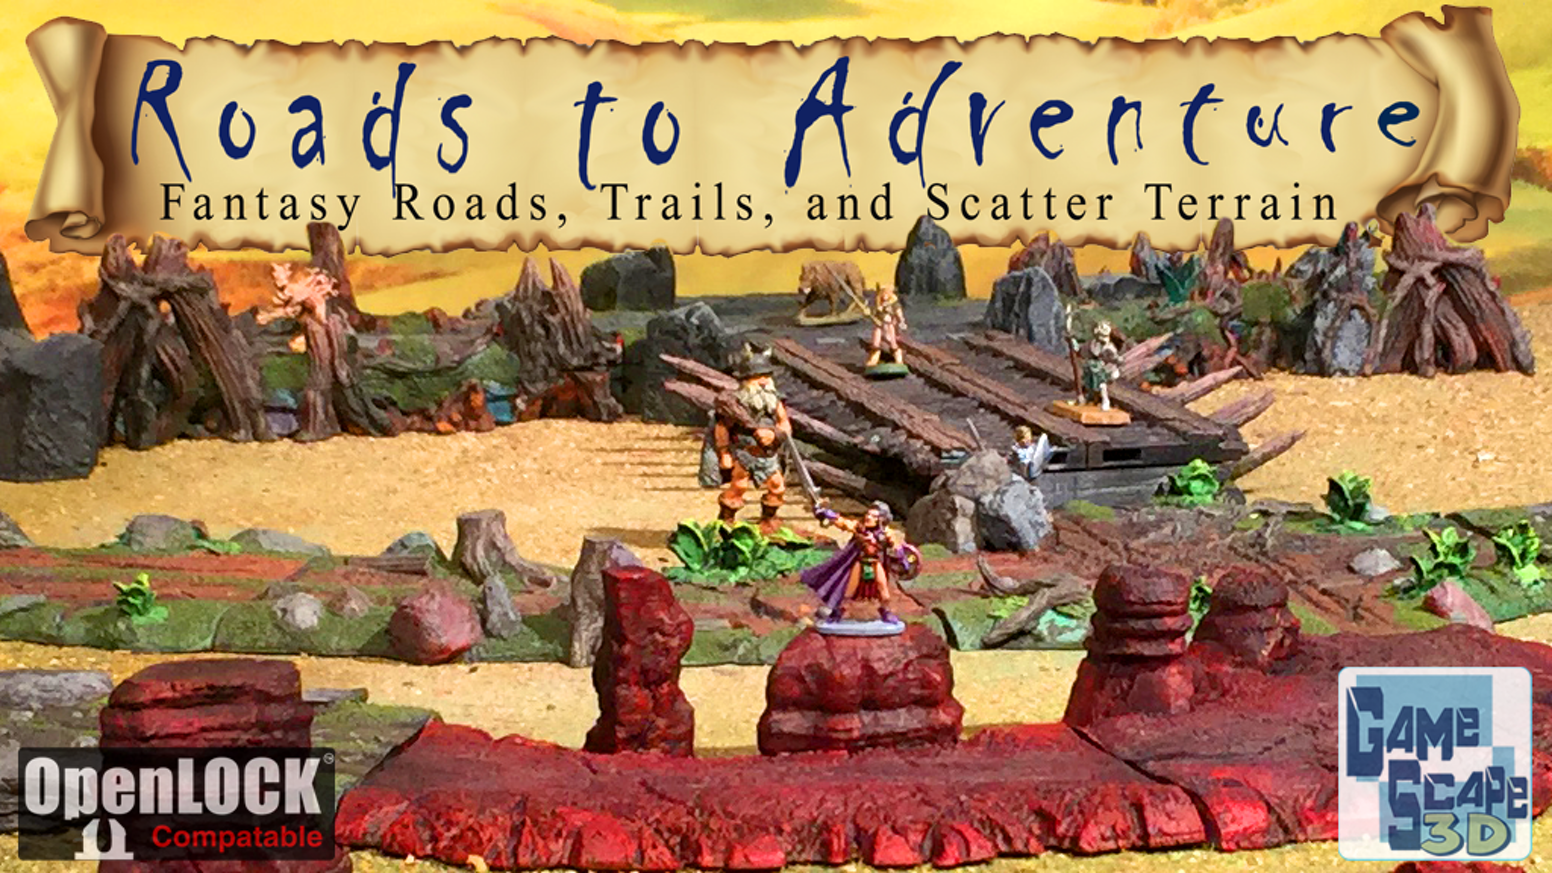 STL Files for 3D Printable Fantasy Roads, Trails, and Scatter Terrain for Tabletop Gaming. 4 unique road styles w/ OpenLOCK connectors